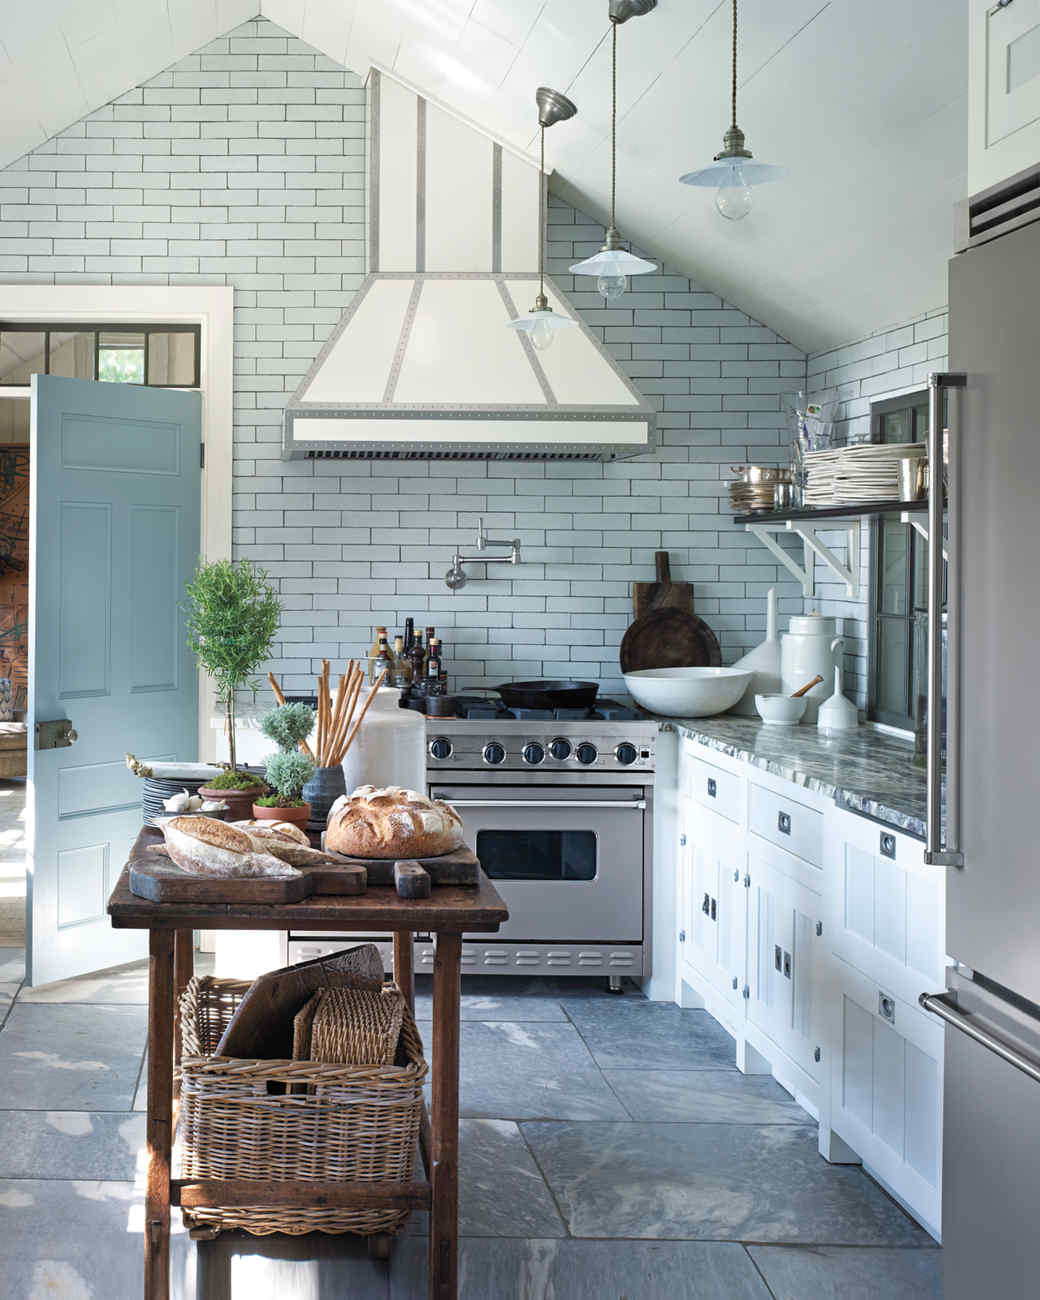 A Rustic Revelation: 8 Creative Country Kitchen Ideas | Martha Stewart